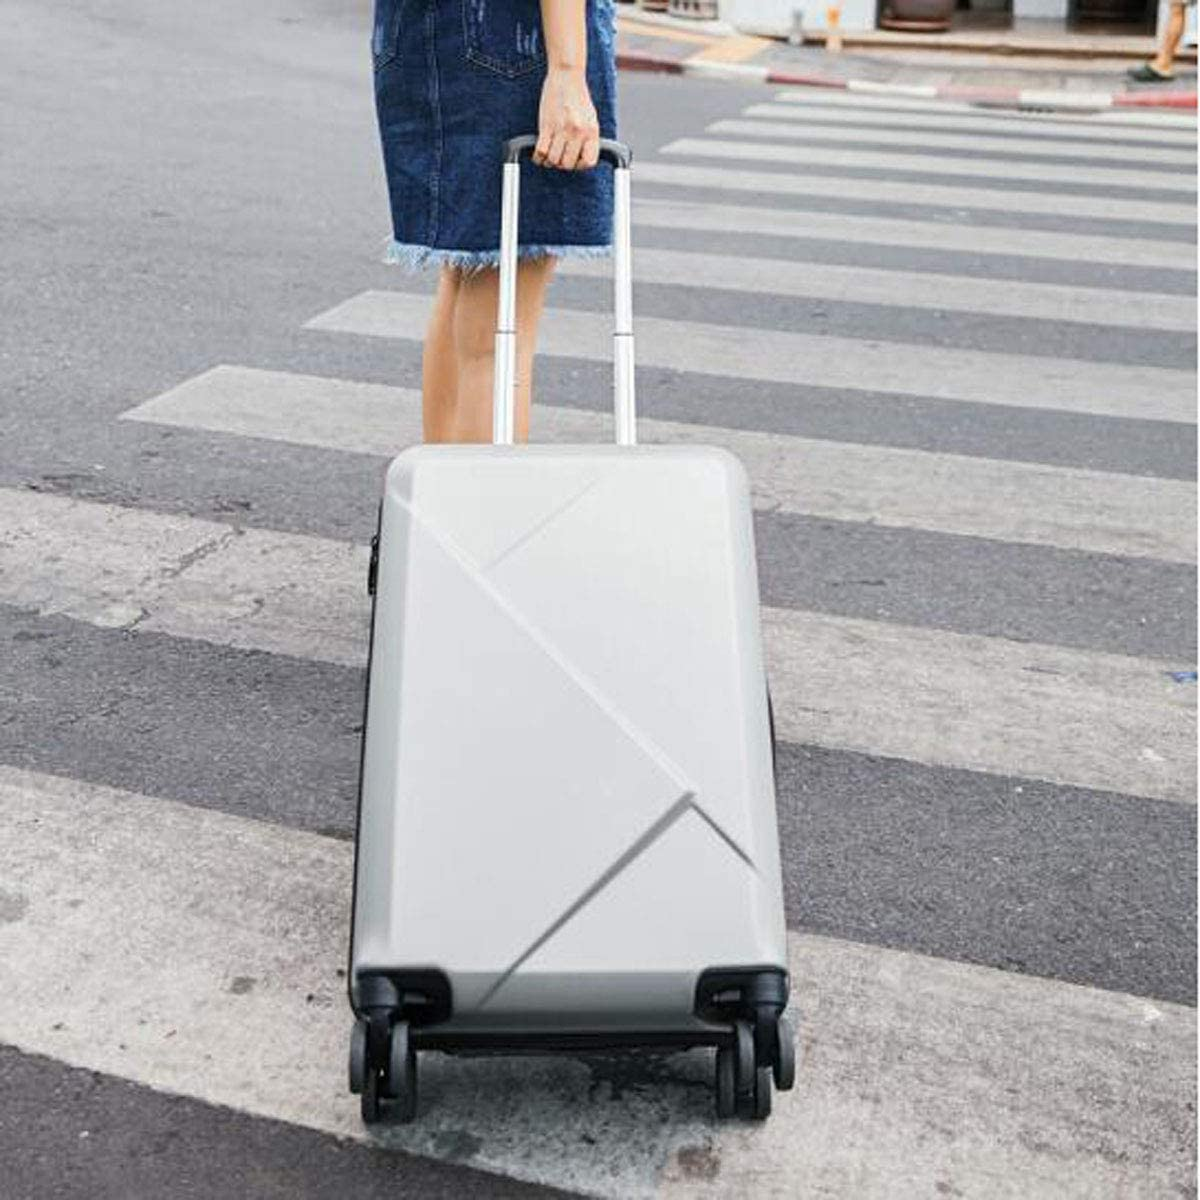 Size Aishanghuayi Suitcase for Ultra Light PC Scratch-Resistant Universal Wheel Mute Student Suitcase Color : Iron Grey, Size : 171024 inch Iron Grey cm 362256